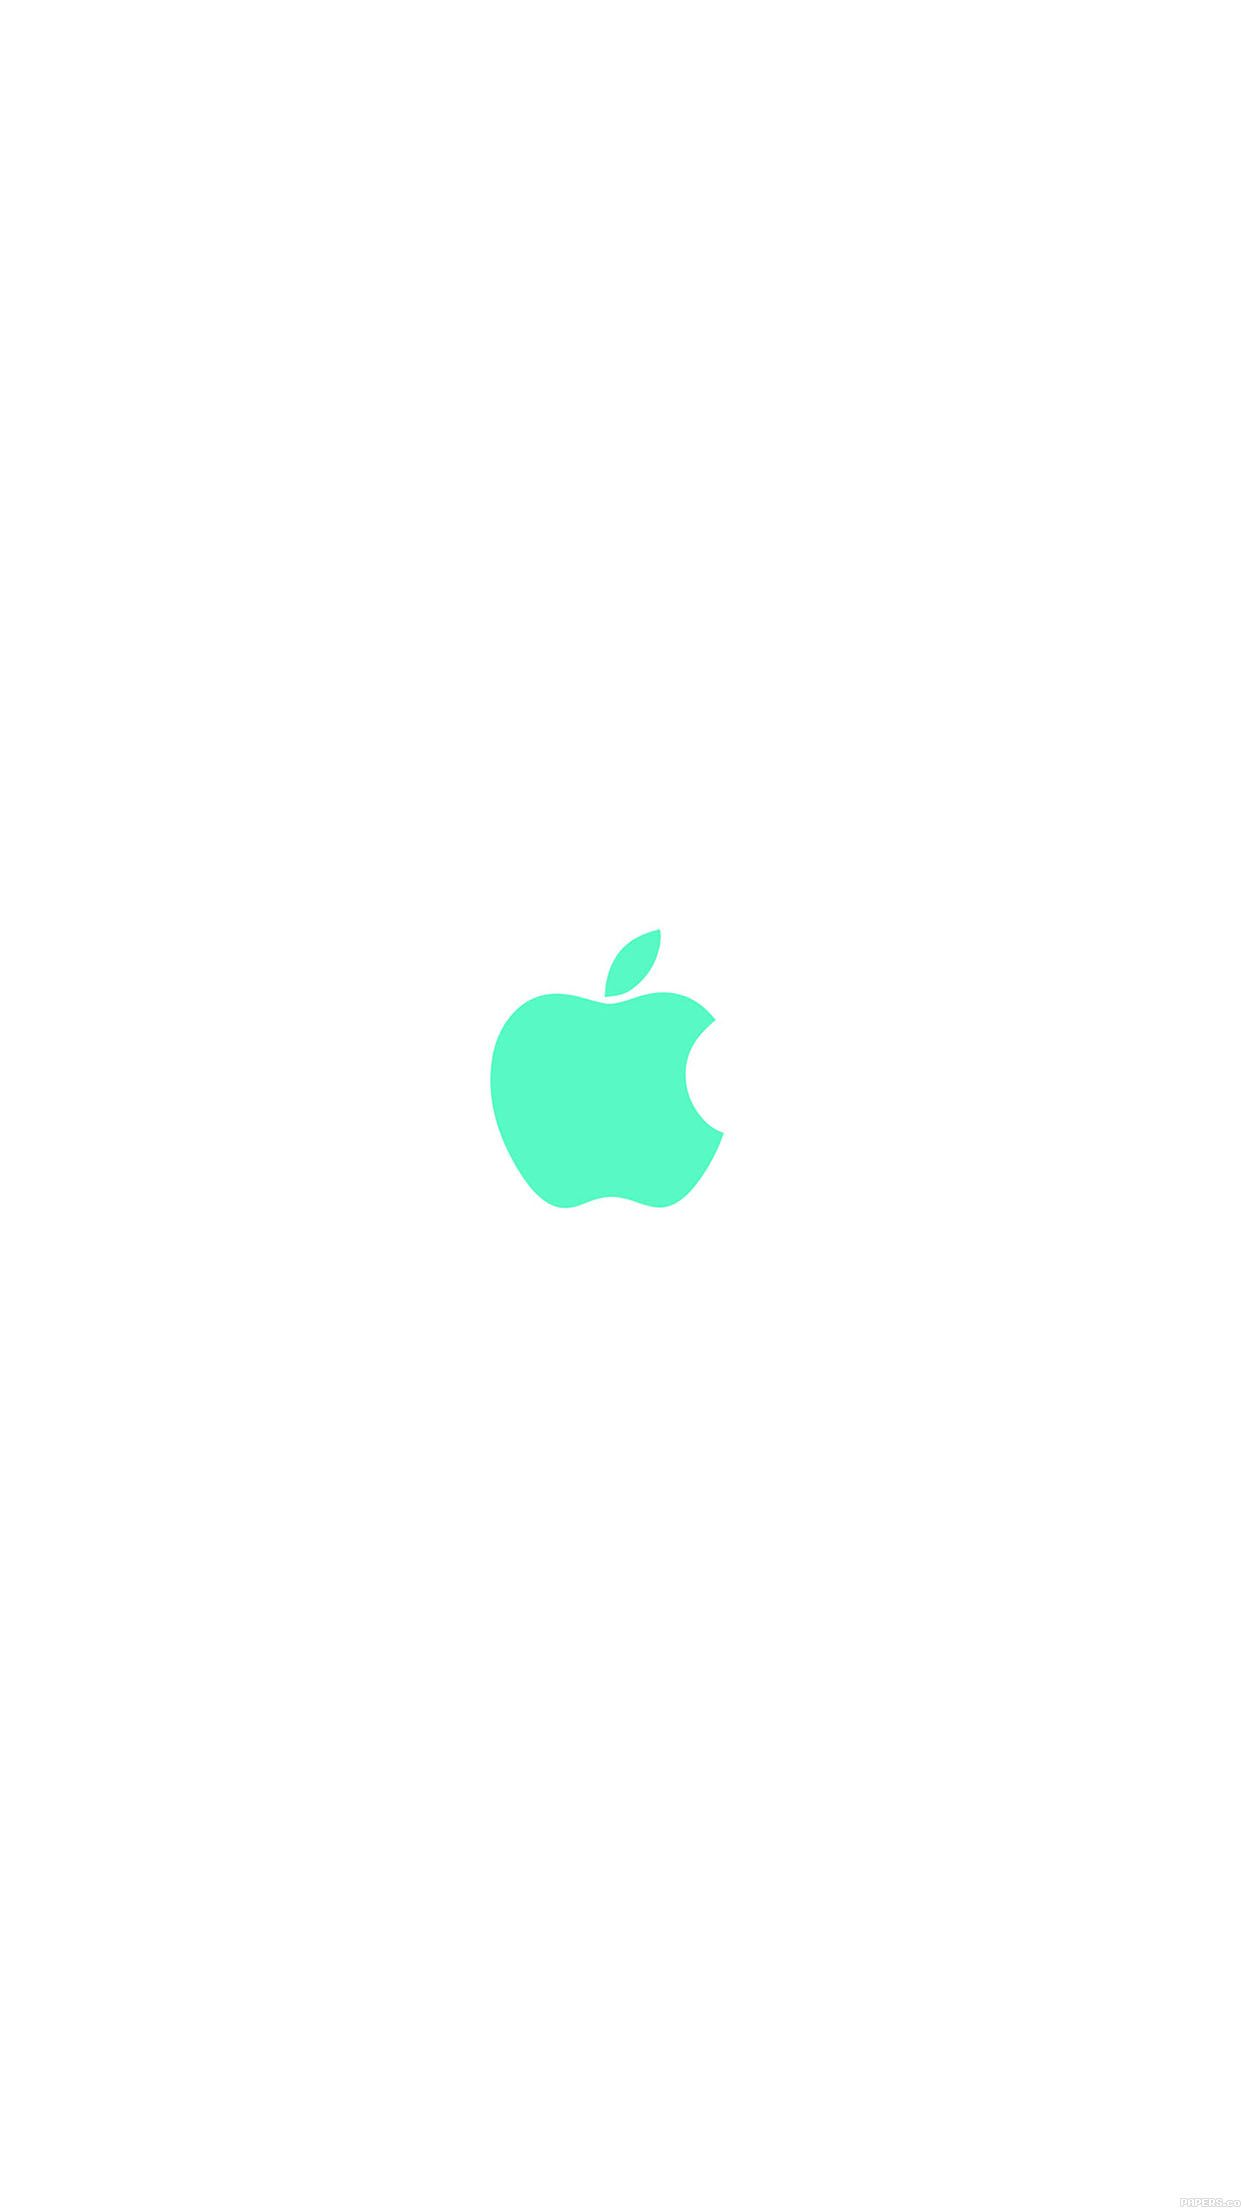 1242x2208 iPhone6papers - va14-apple-simple-logo-color-green-minimal